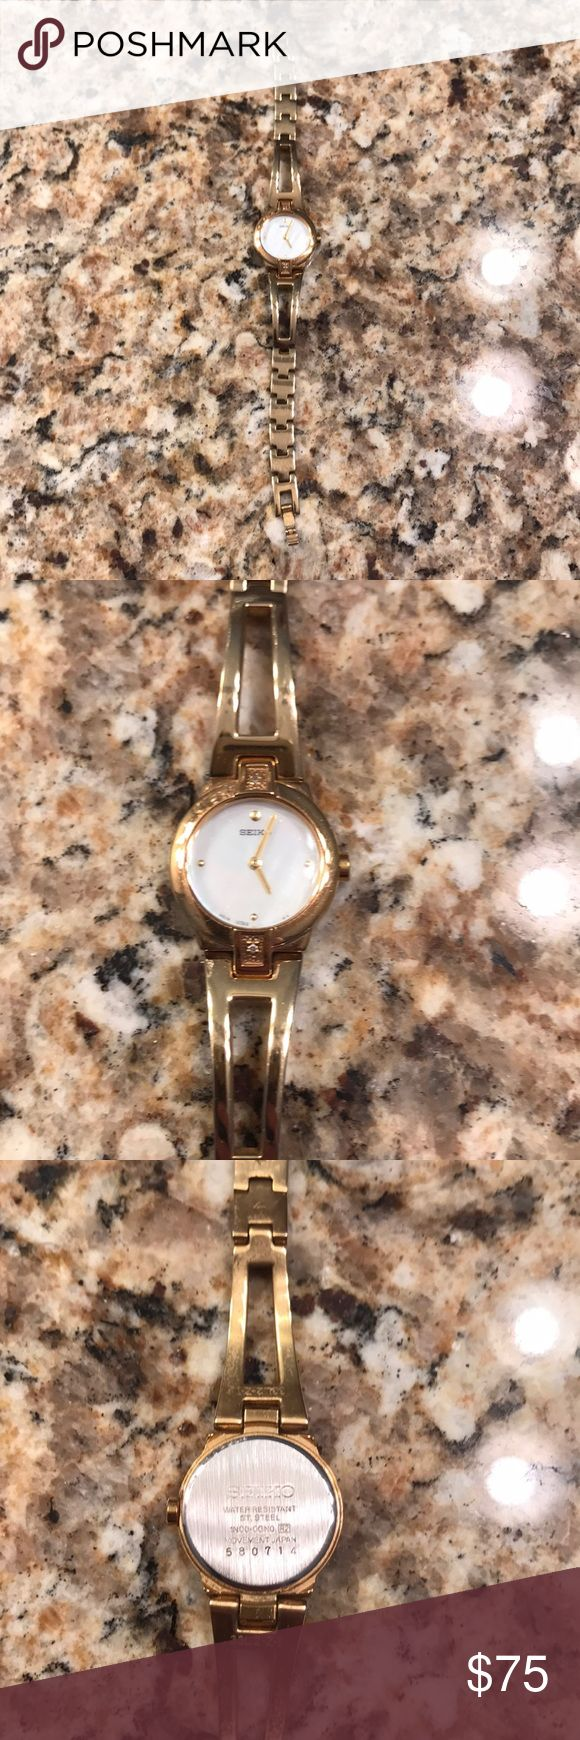 Seiko Watch Gold Seiko Pearl/Diamond Watch  - worn a few times (no signs of major wear) - pearlized face - smaller face  - needs battery -smoke free home Seiko Jewelry